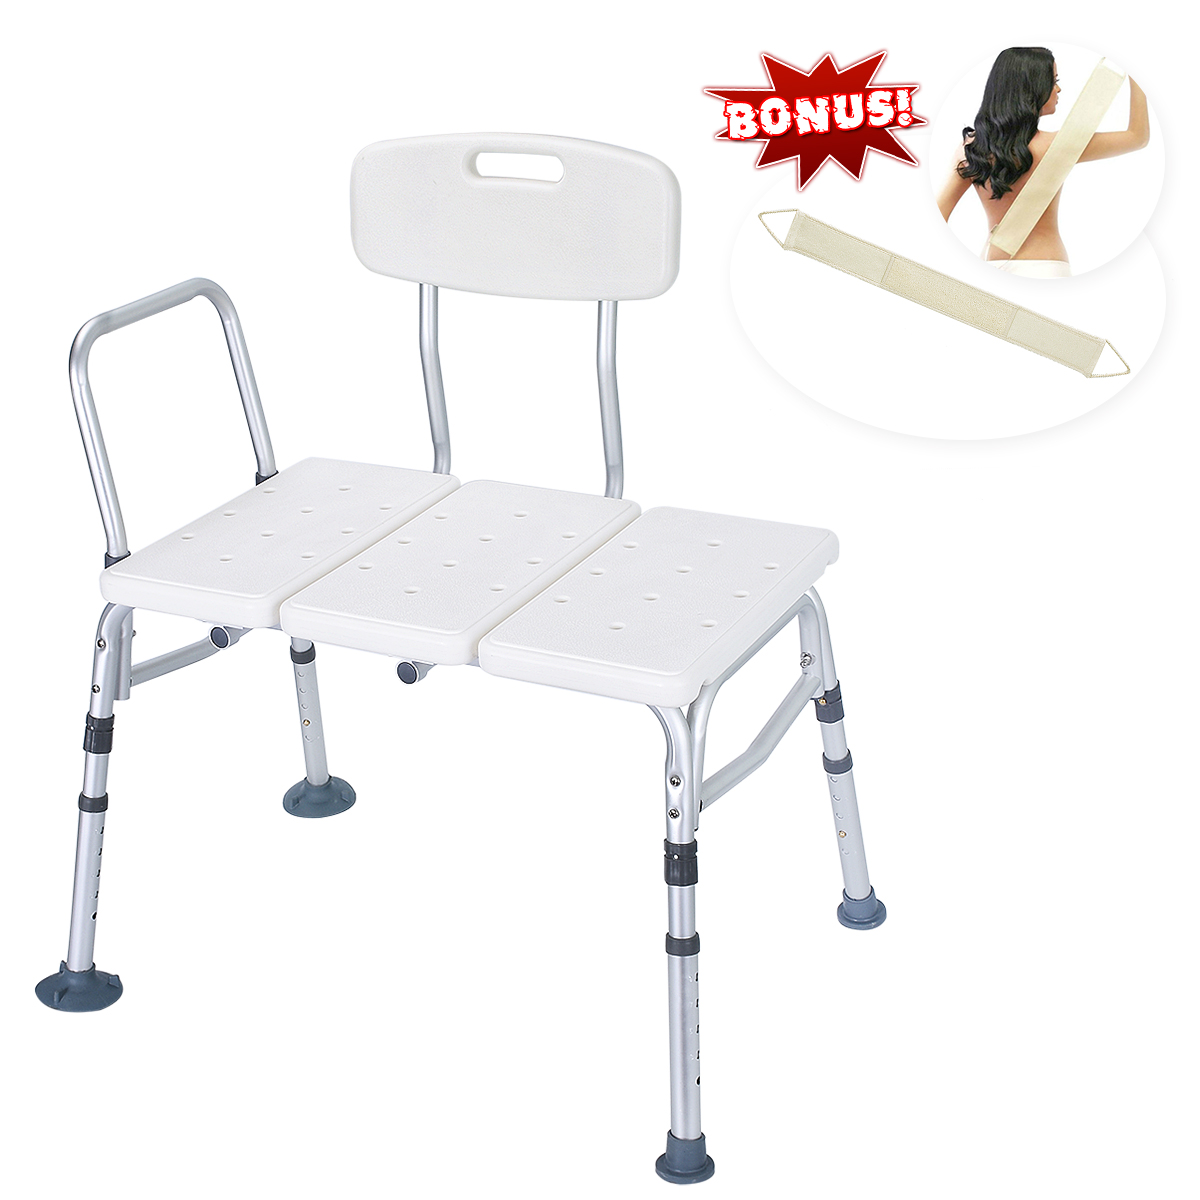 Health Line 400 lbs Transfer Bench, Adjustable Bath Shower Chair Bathtub Bench Stool Seat, with Reversible Back and Free Back Scrubber